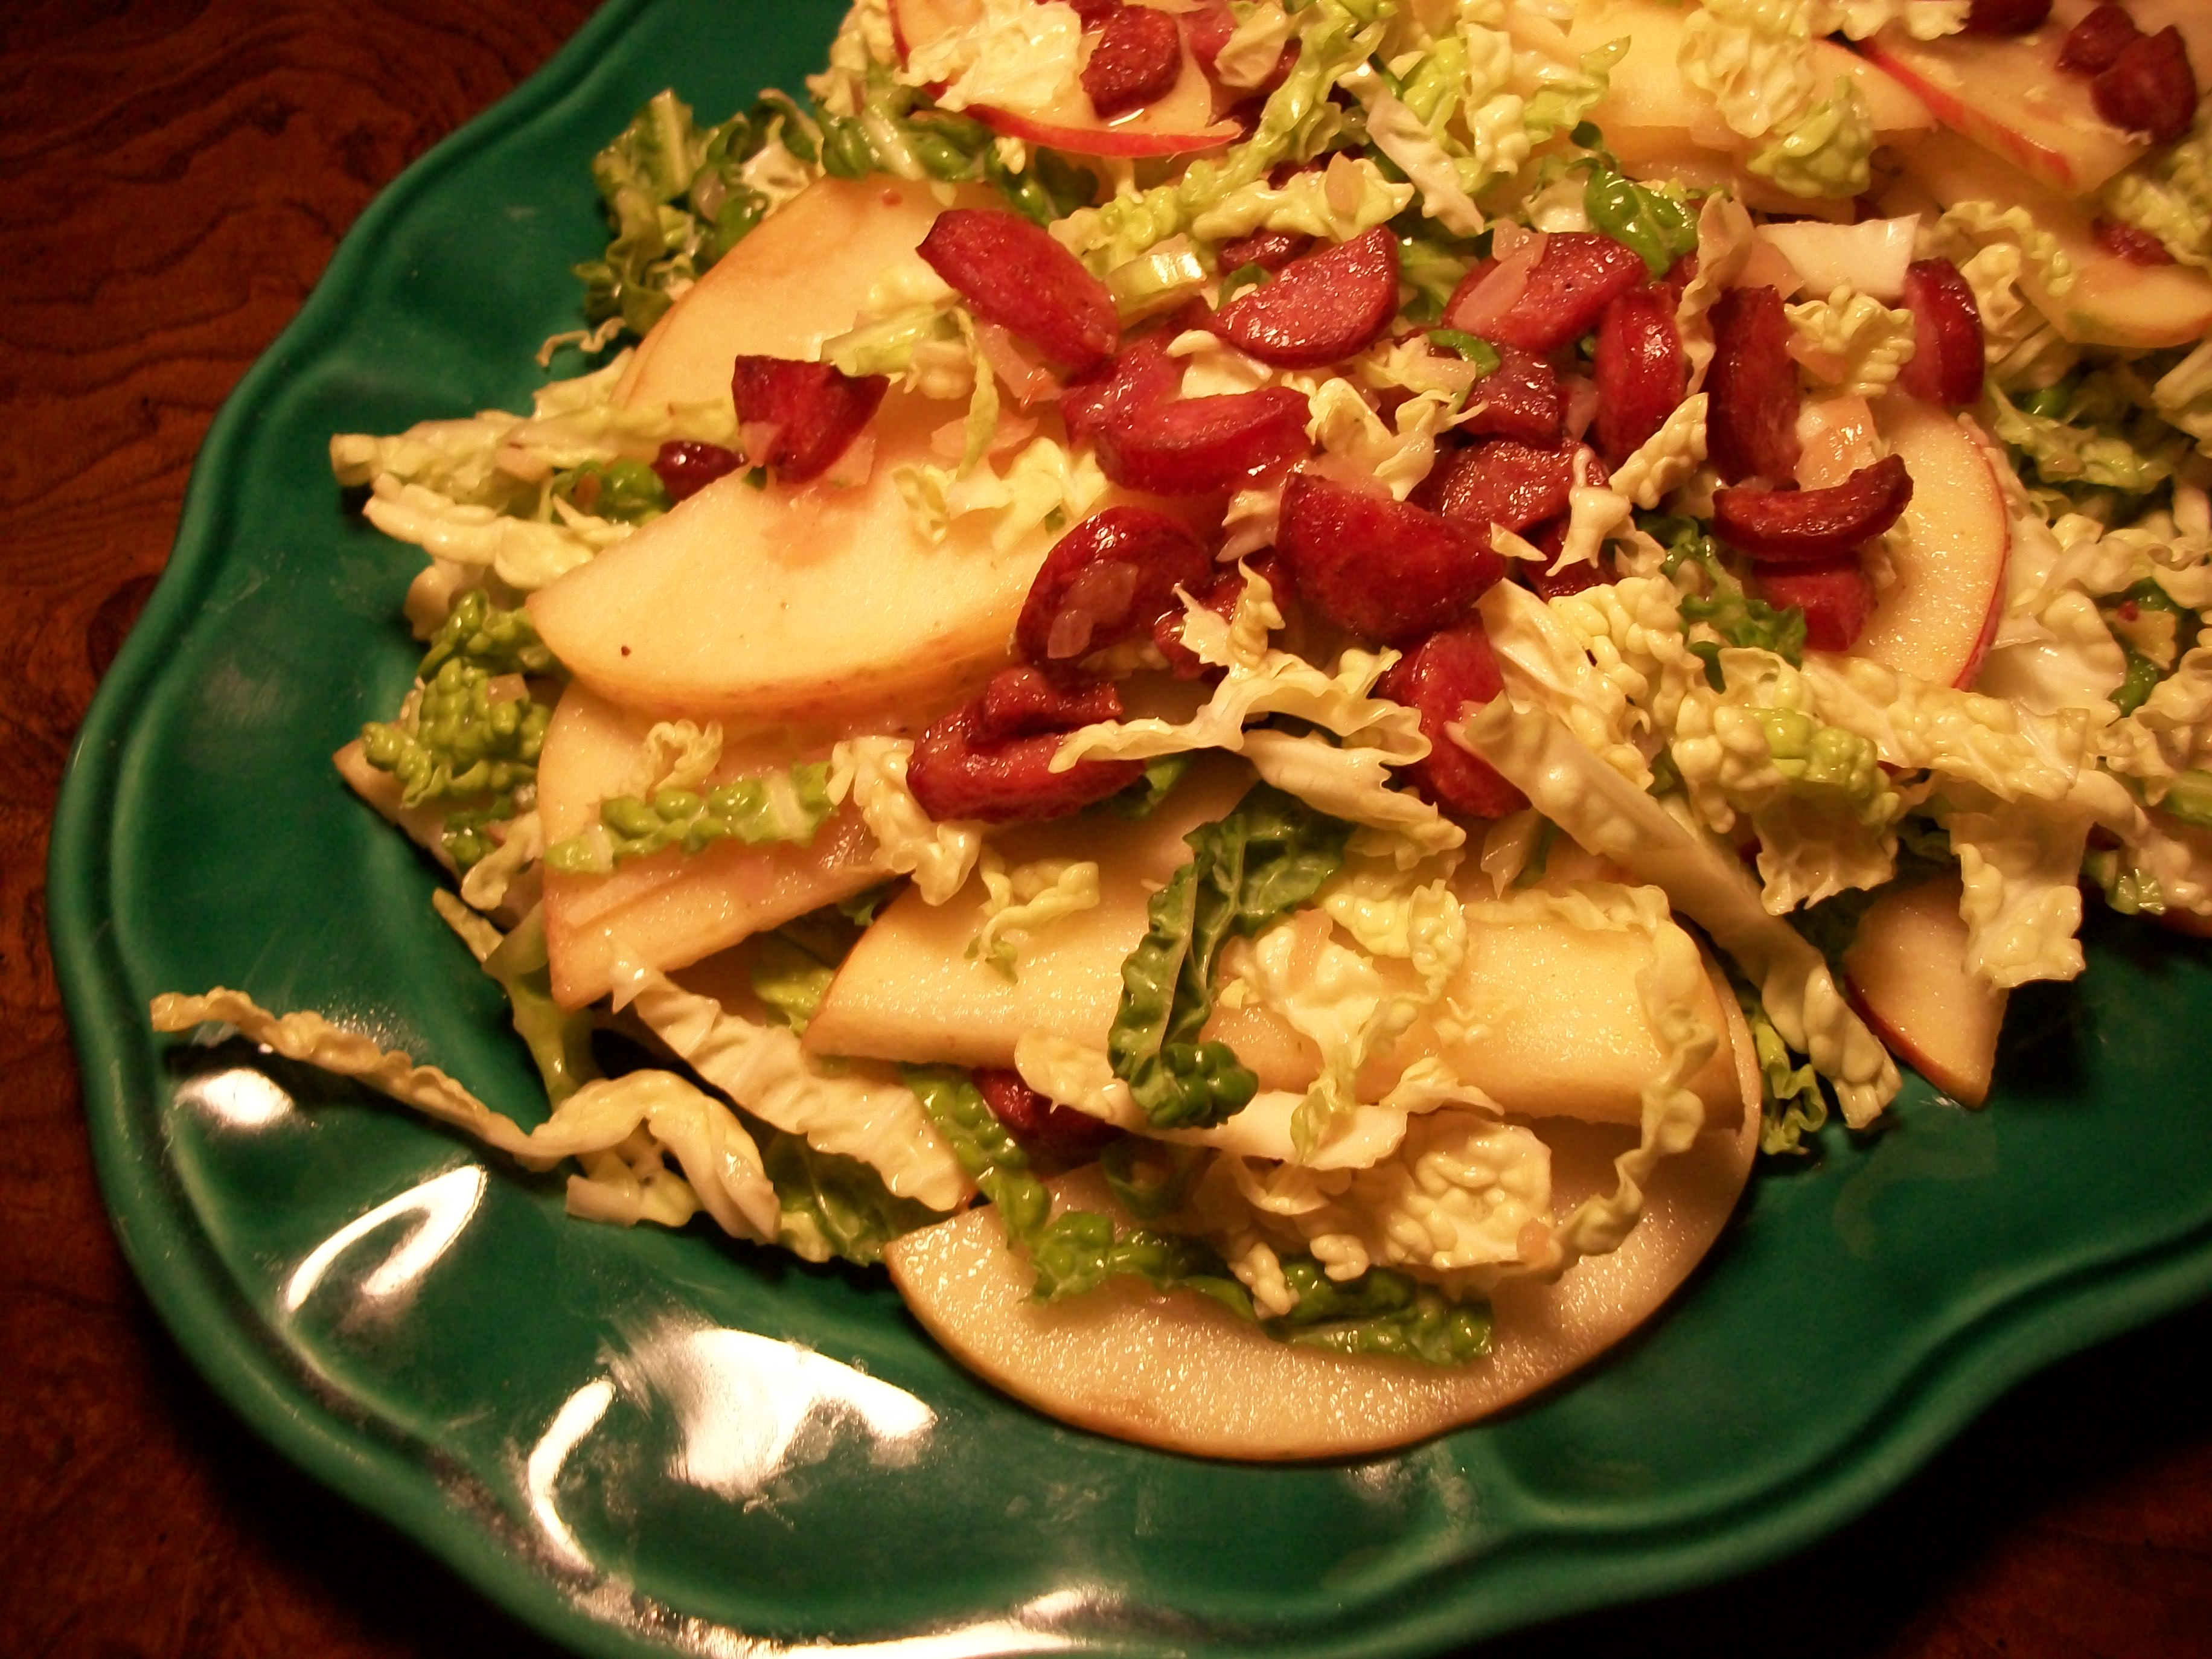 Polish Apple and Cabbage Salad